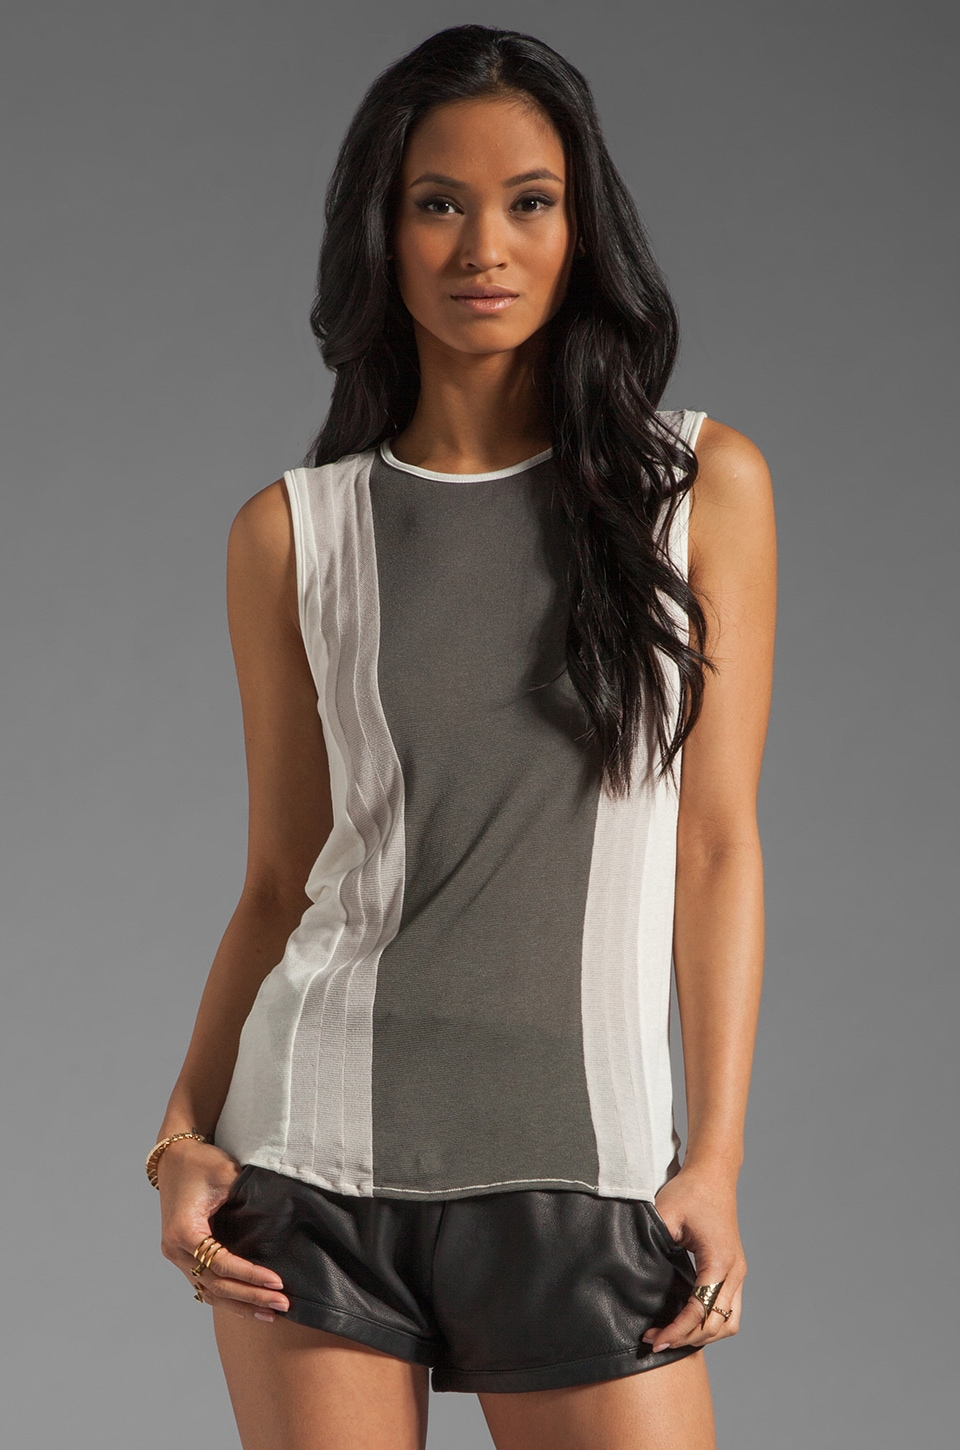 fLuXuS Sleeveless Elza Top in Quartz Multi